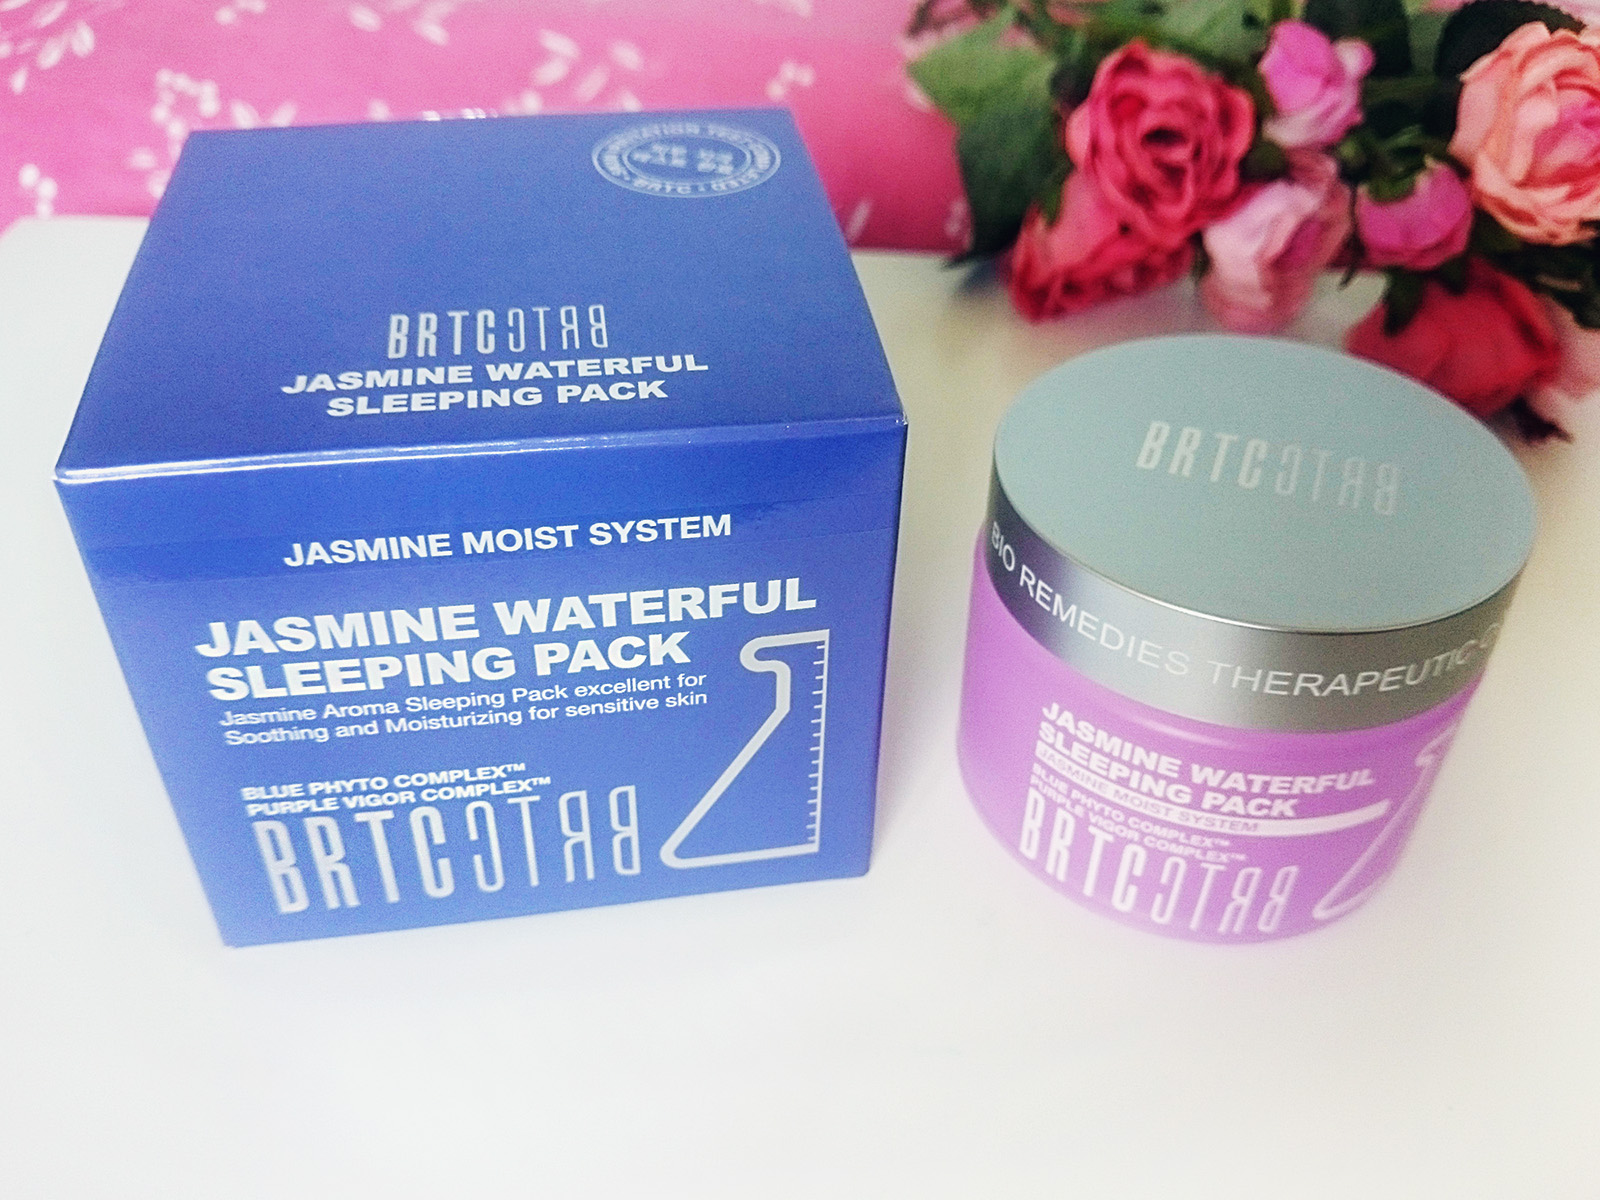 BRTC Jasmine Waterful Sleeping Pack